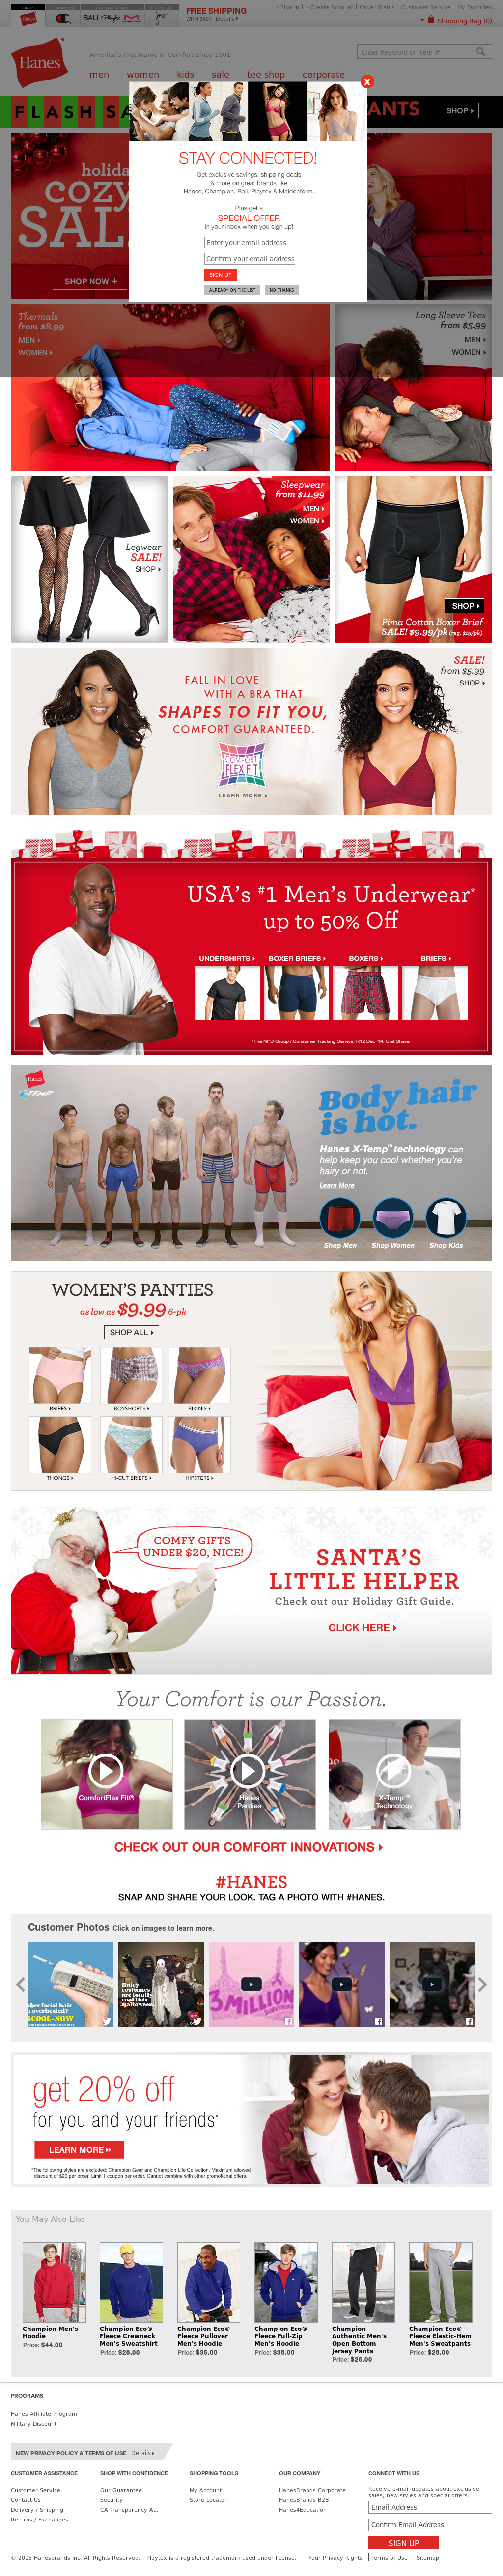 eb7f72058d5 Owler Reports - Press Release  Hanesbrands   Kangaroo-M to Roam  Hanes  New  Comfort Flex Fit Men s Boxer Briefs Bring the Pouch to Combat the Ouch